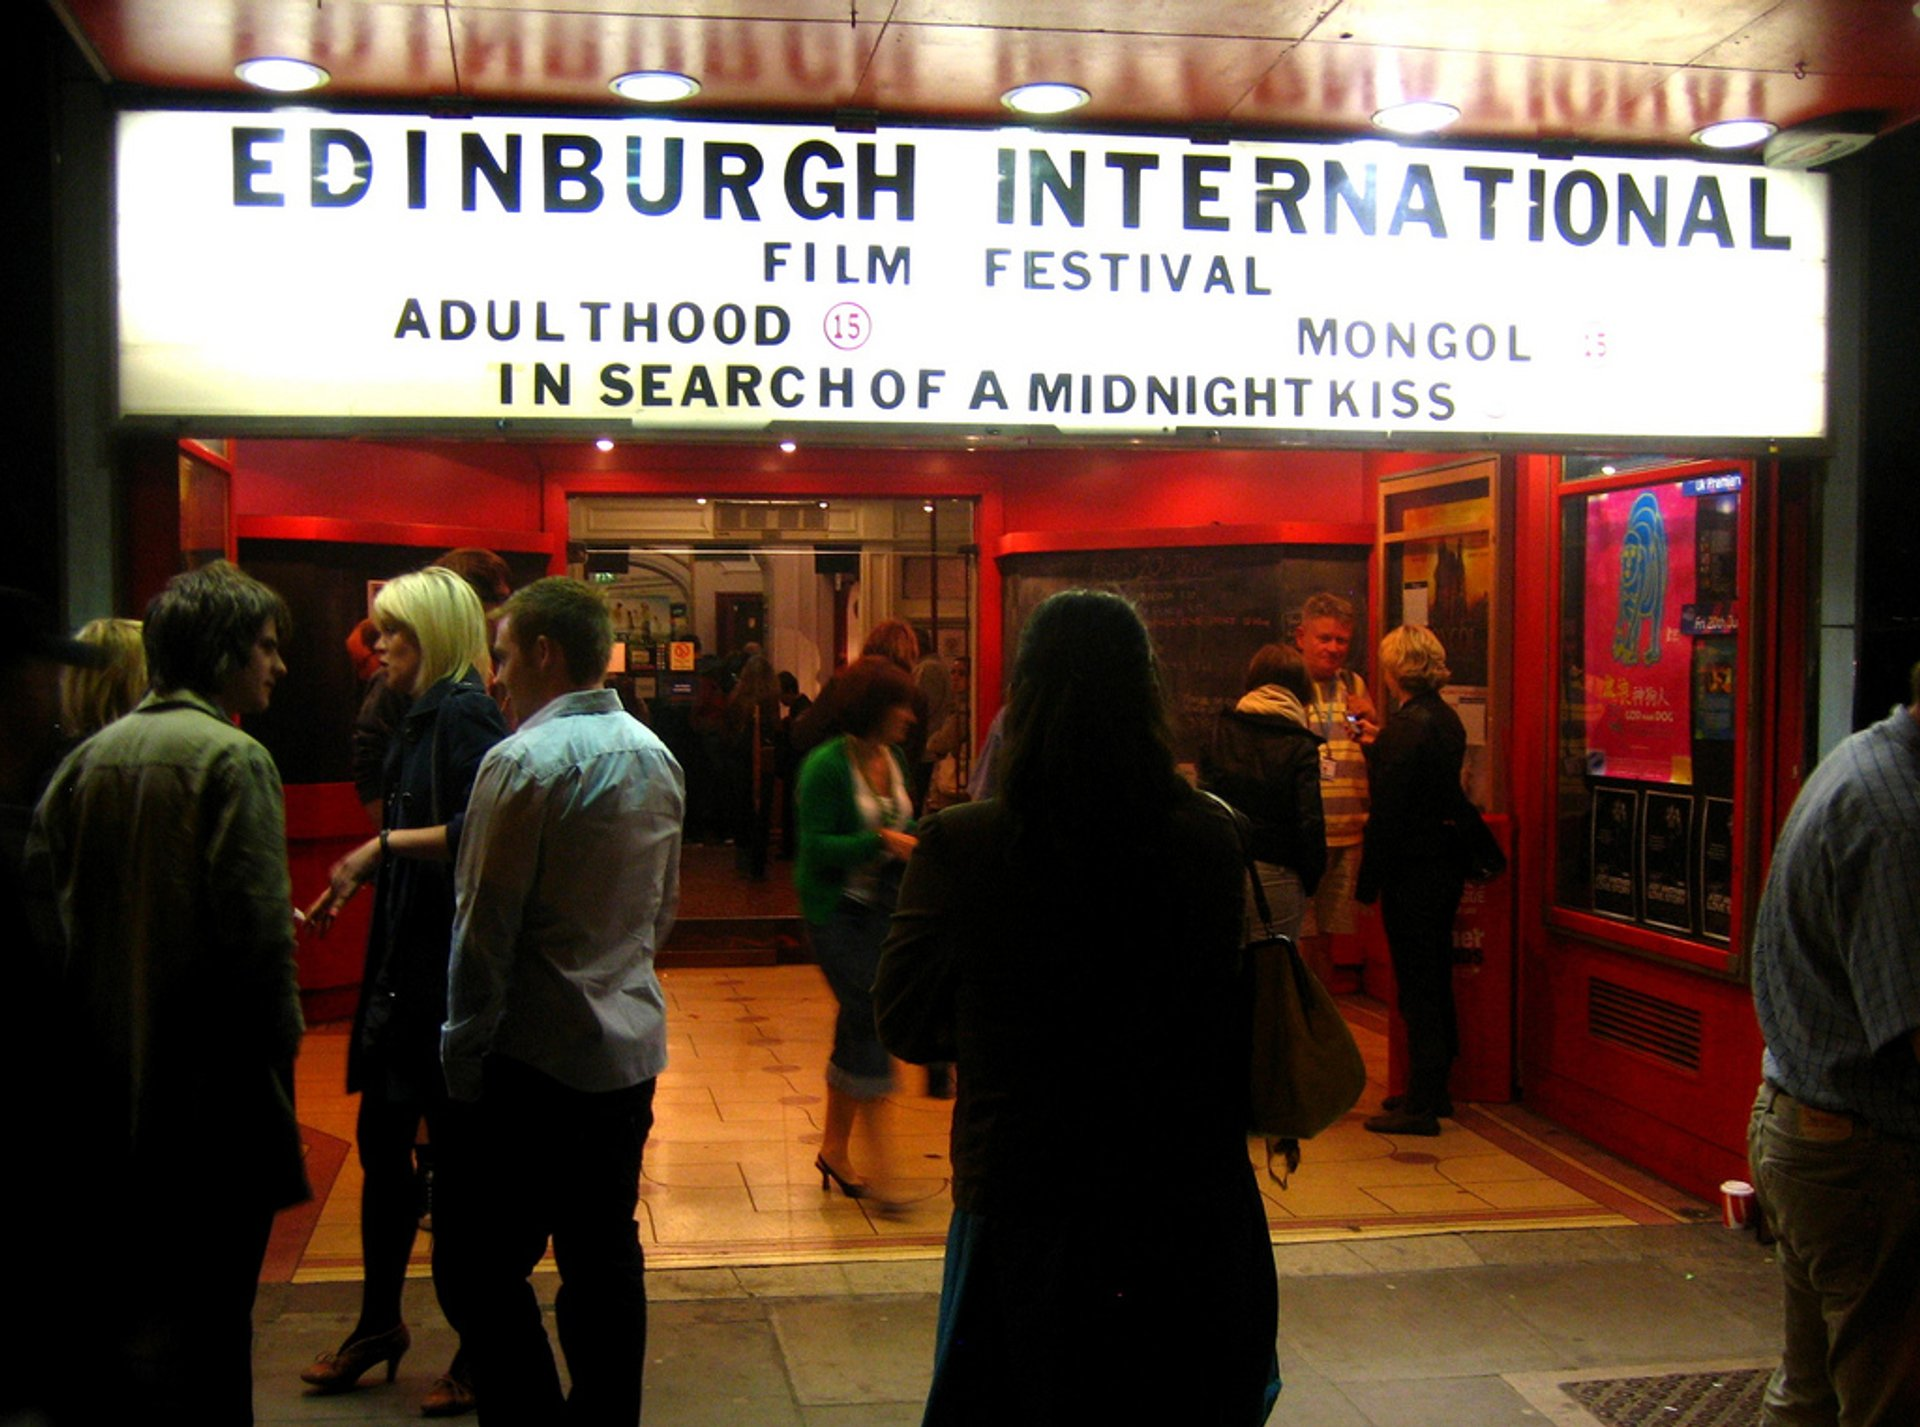 Edinburgh International Film Festival (EIFF) in Edinburgh 2020 - Best Time